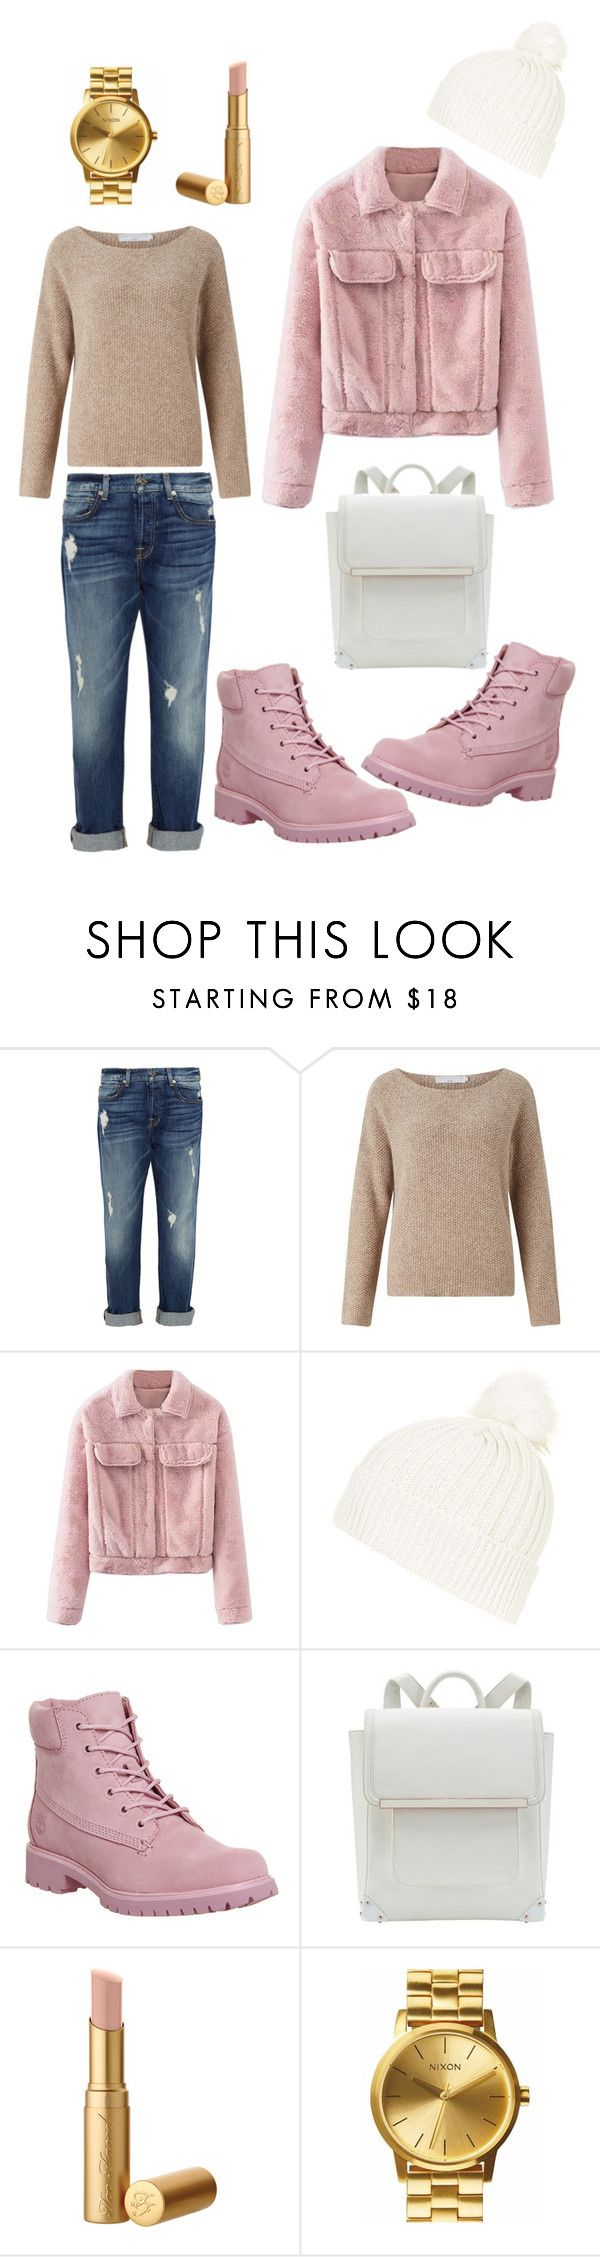 """""""cuffed jeans and faux fur jacket"""" by anichch ❤ liked on Polyvore featuring 7 For All Mankind, John Lewis, WithChic, Topshop, Timberland, Nixon, boyfriend, timberland, cuffedjeans and cuffed"""